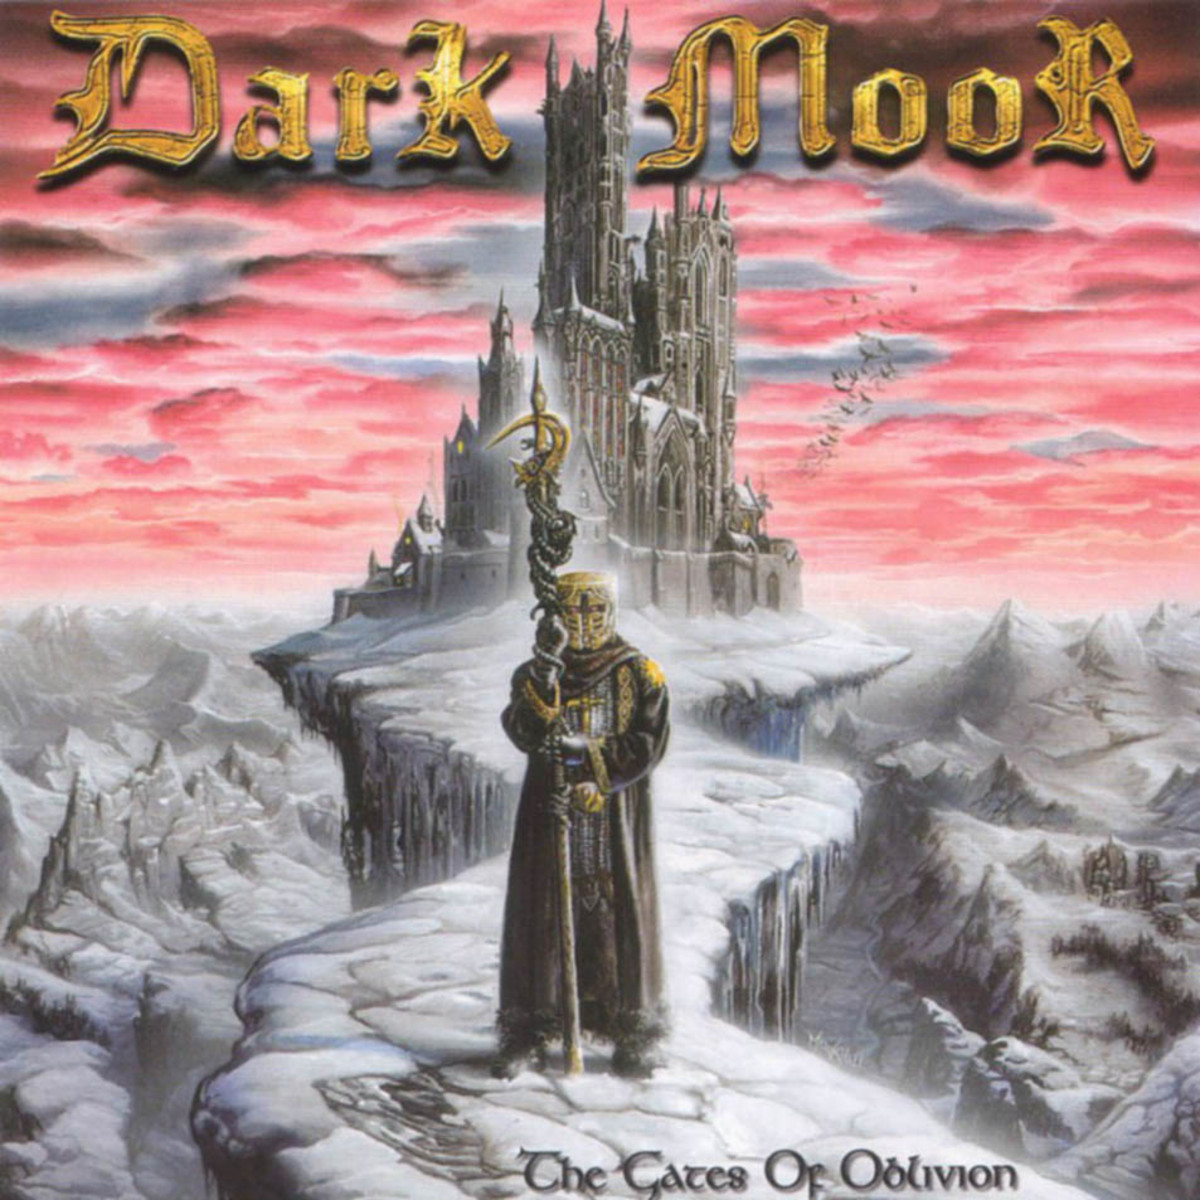 A Review of The Gates of Oblivion by Spanish Power Metal Band Dark Moor